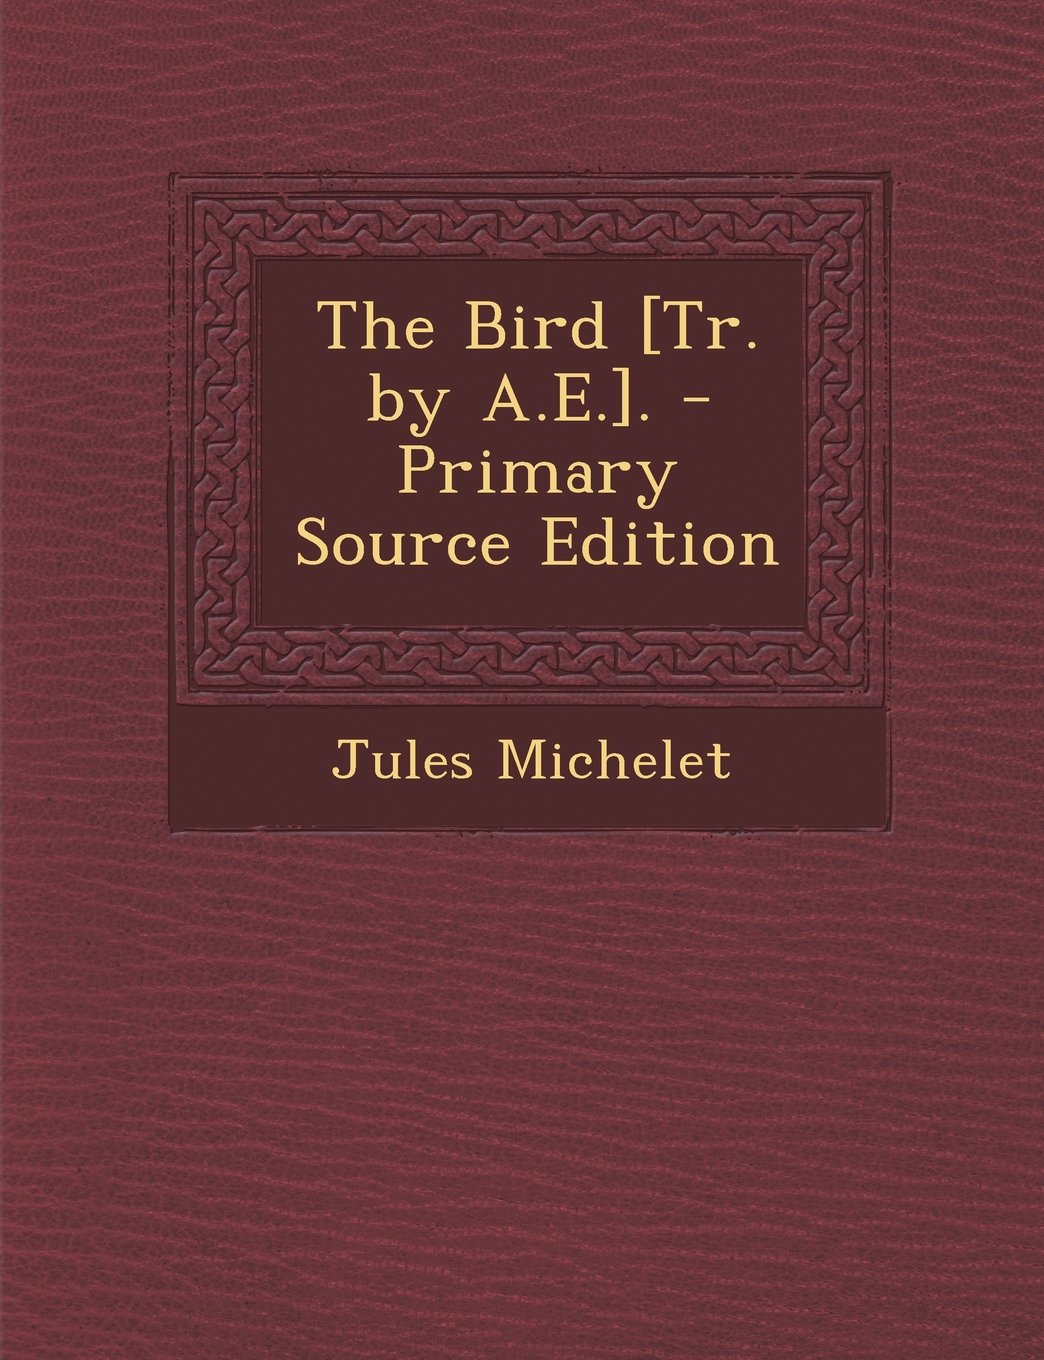 Read Online The Bird [Tr. by A.E.]. - Primary Source Edition PDF